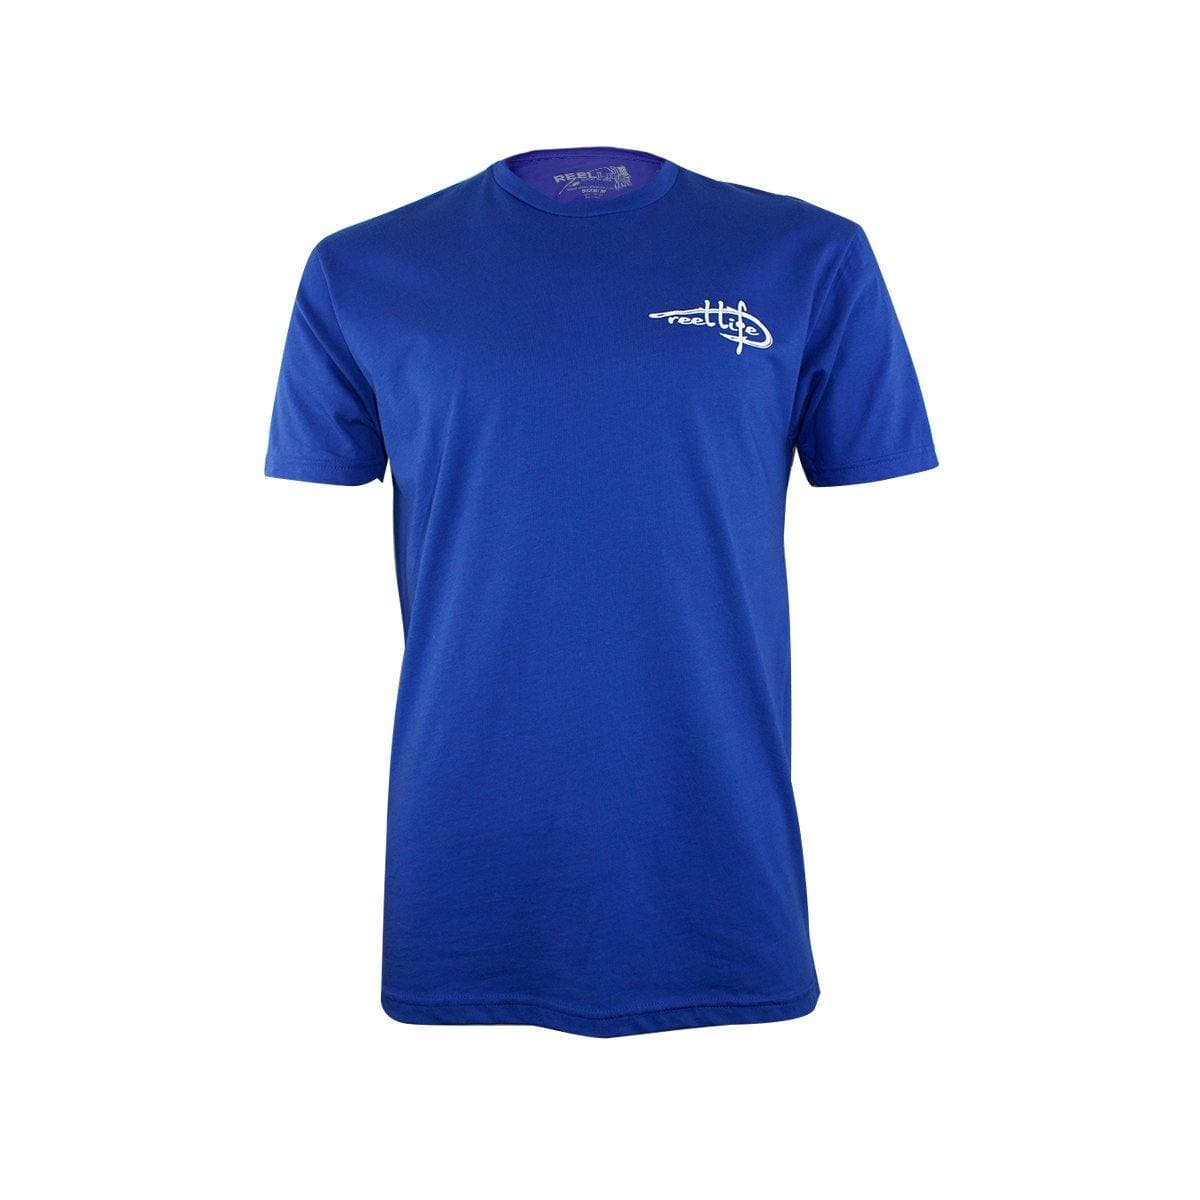 "Reel Life Men's Short Sleeve Graphic Tee ""Hooked on USA""- Royal Blue"